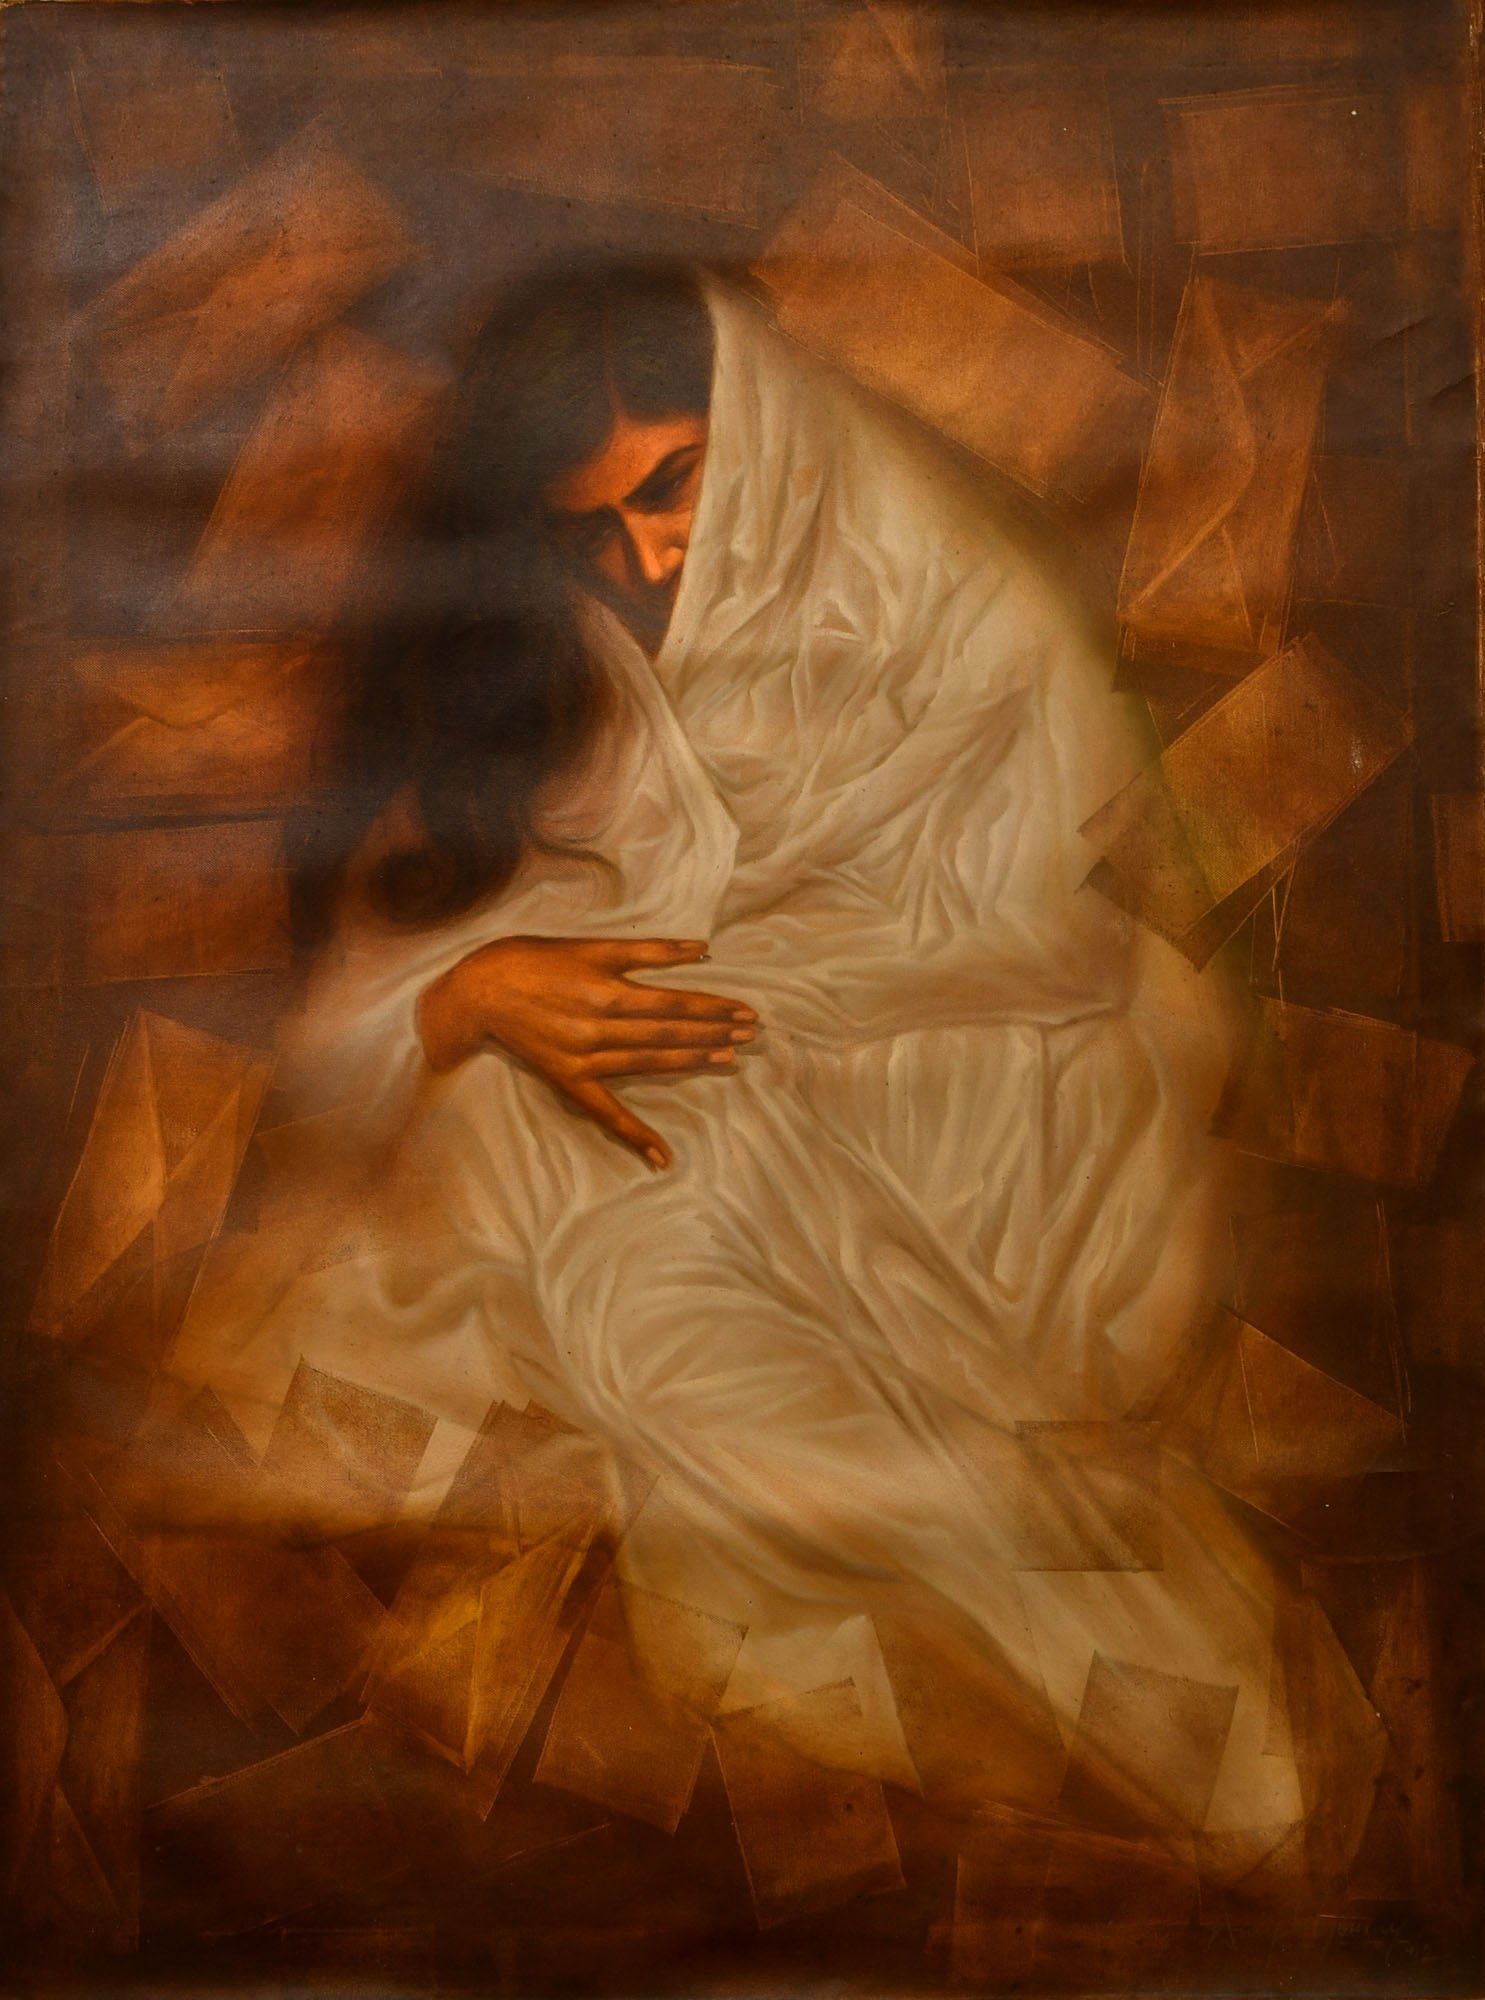 Lady Emerging from Love Letters - Oil Painting on Canvas - Artist: Anup Gomay